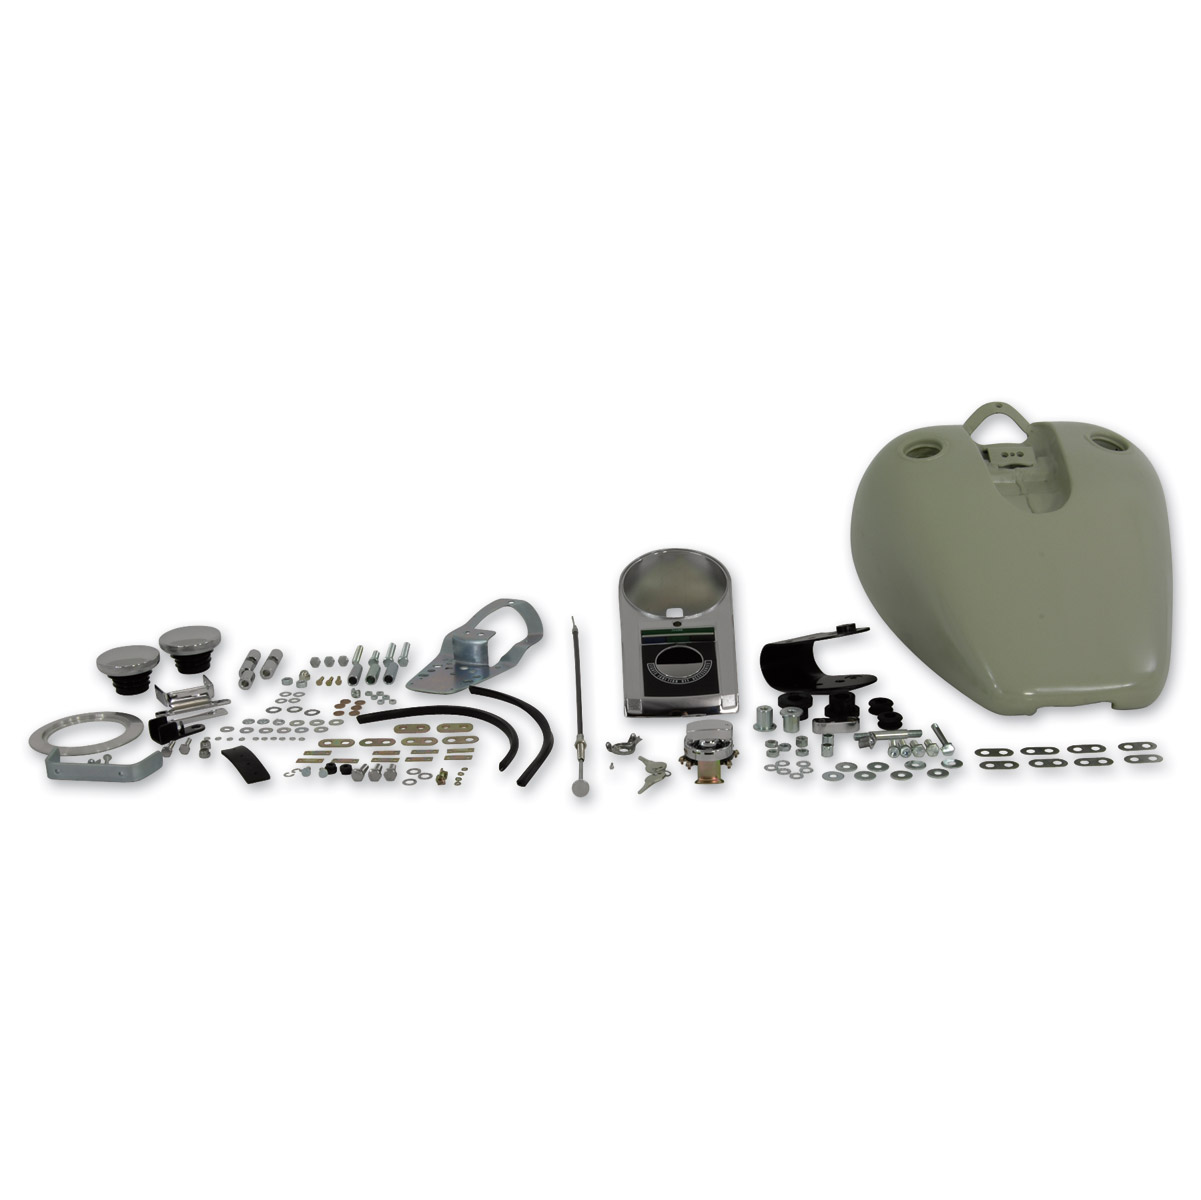 E-Z Bob Tank Kits for Sportster